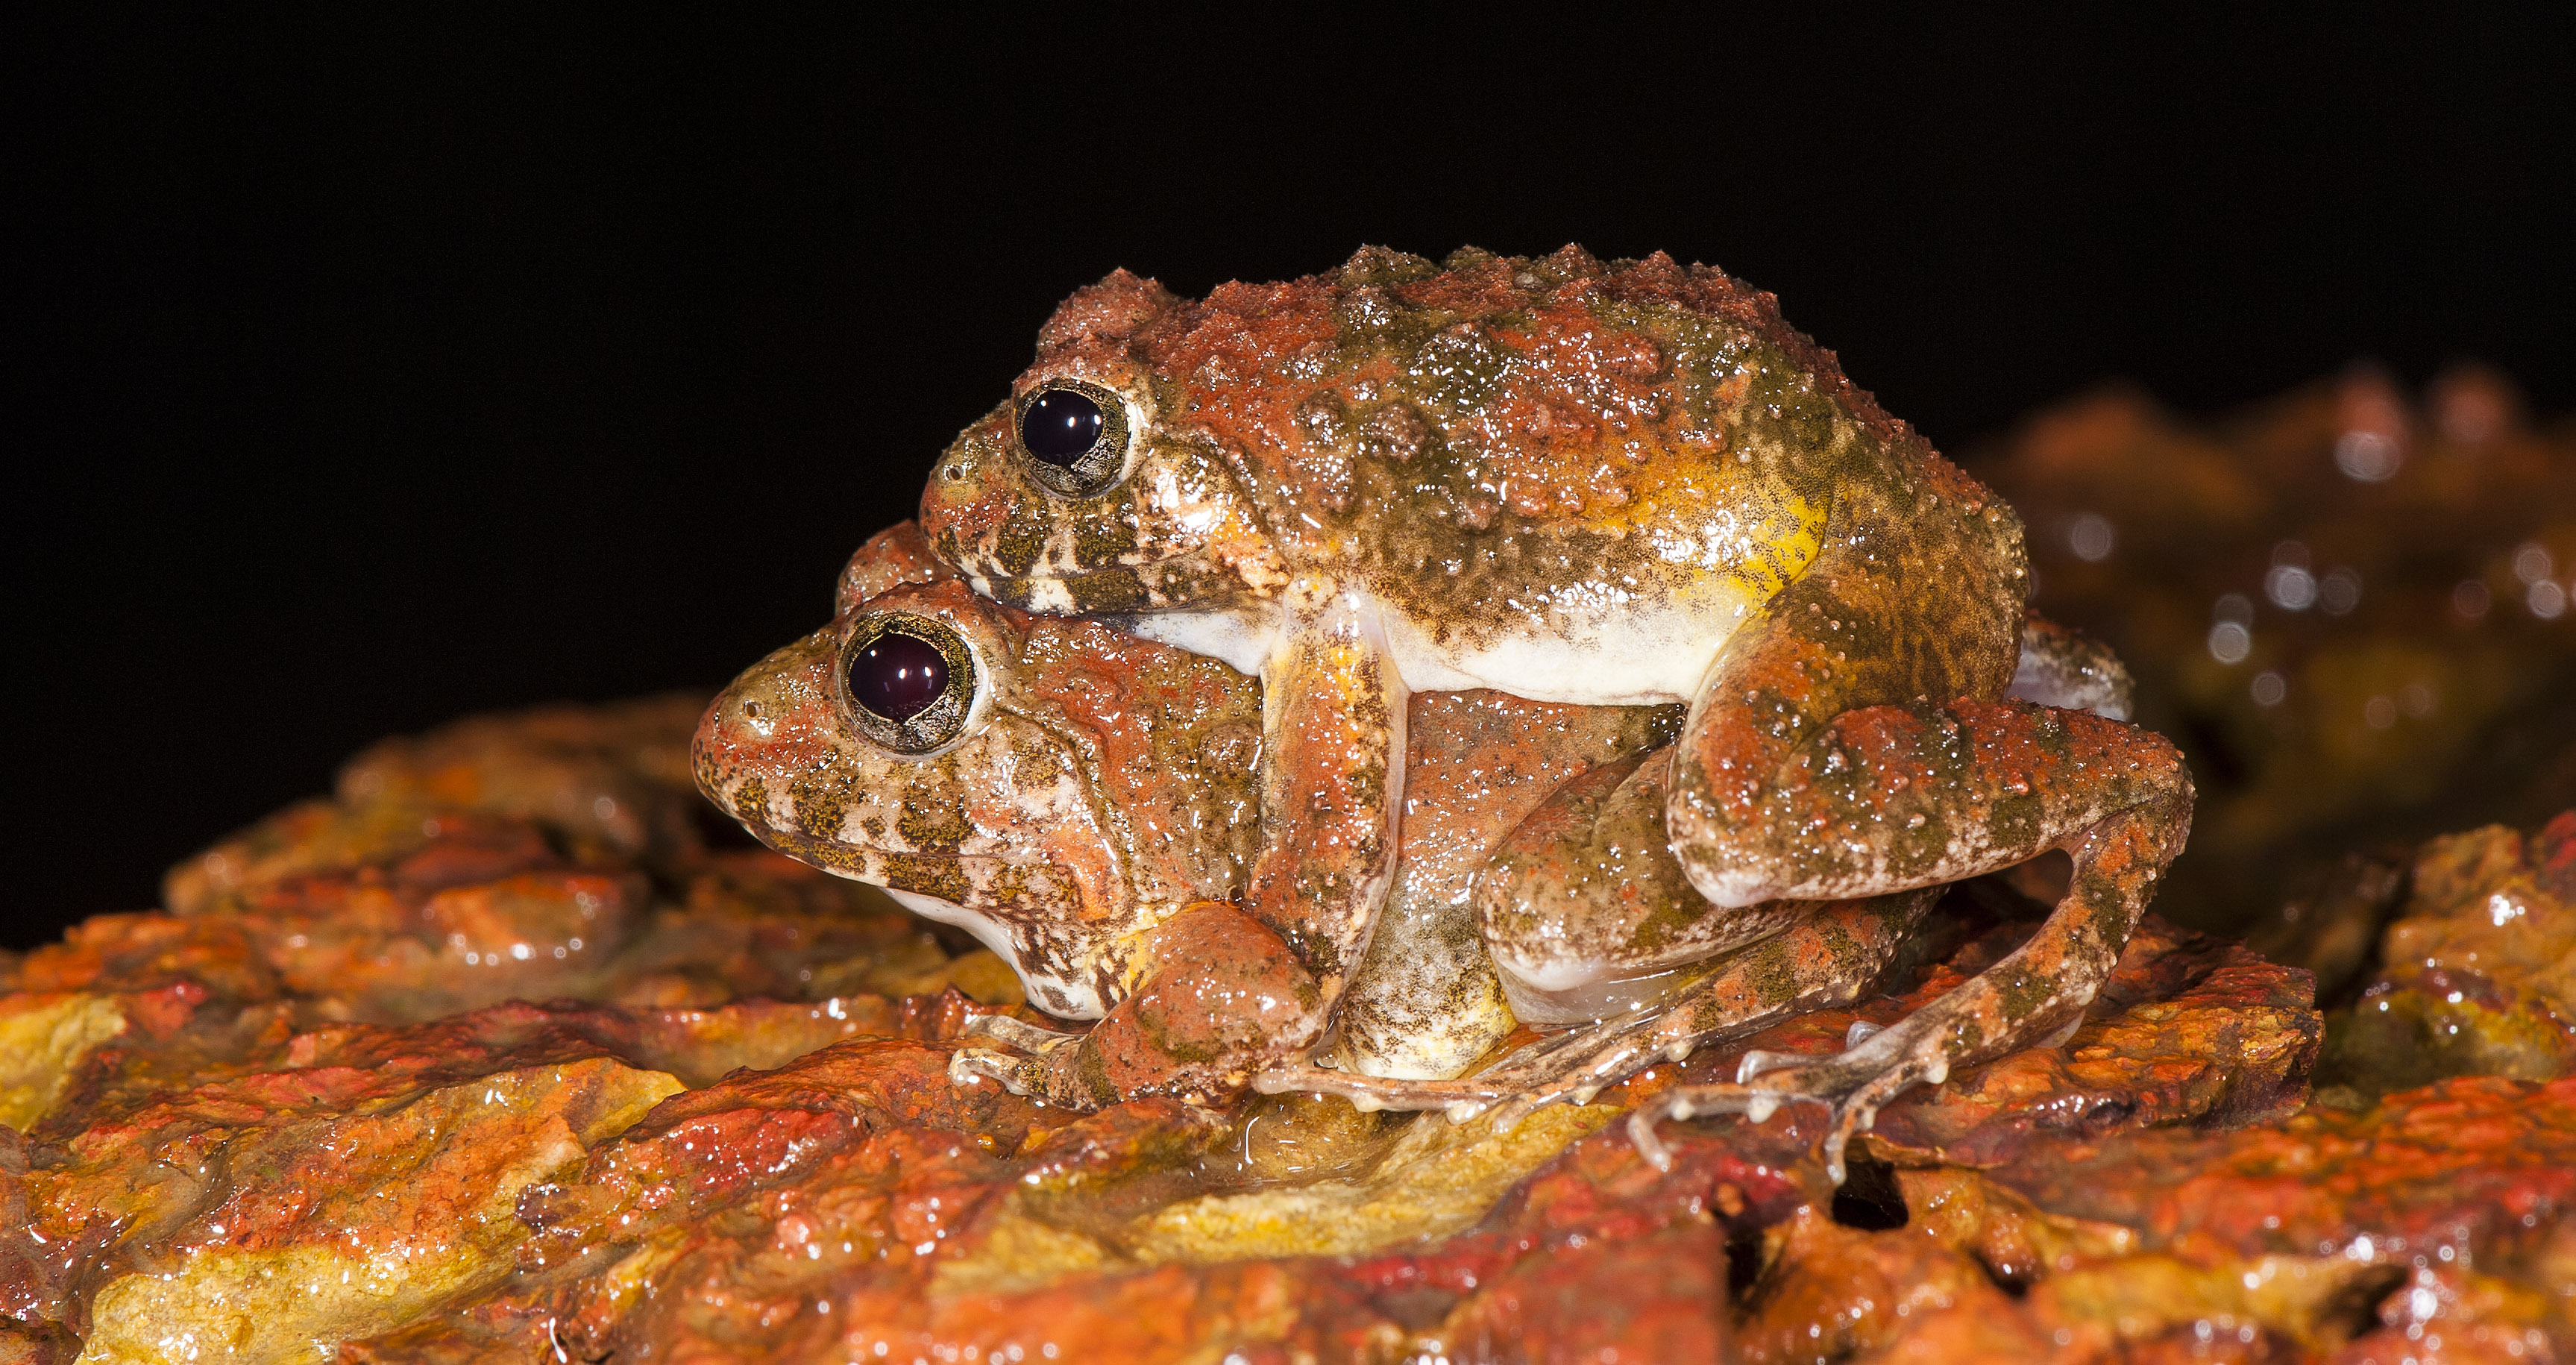 Critical Ecosystem Partnership Fund frogs, or CEPF frogs mating. (Photo credit: SD Biju).